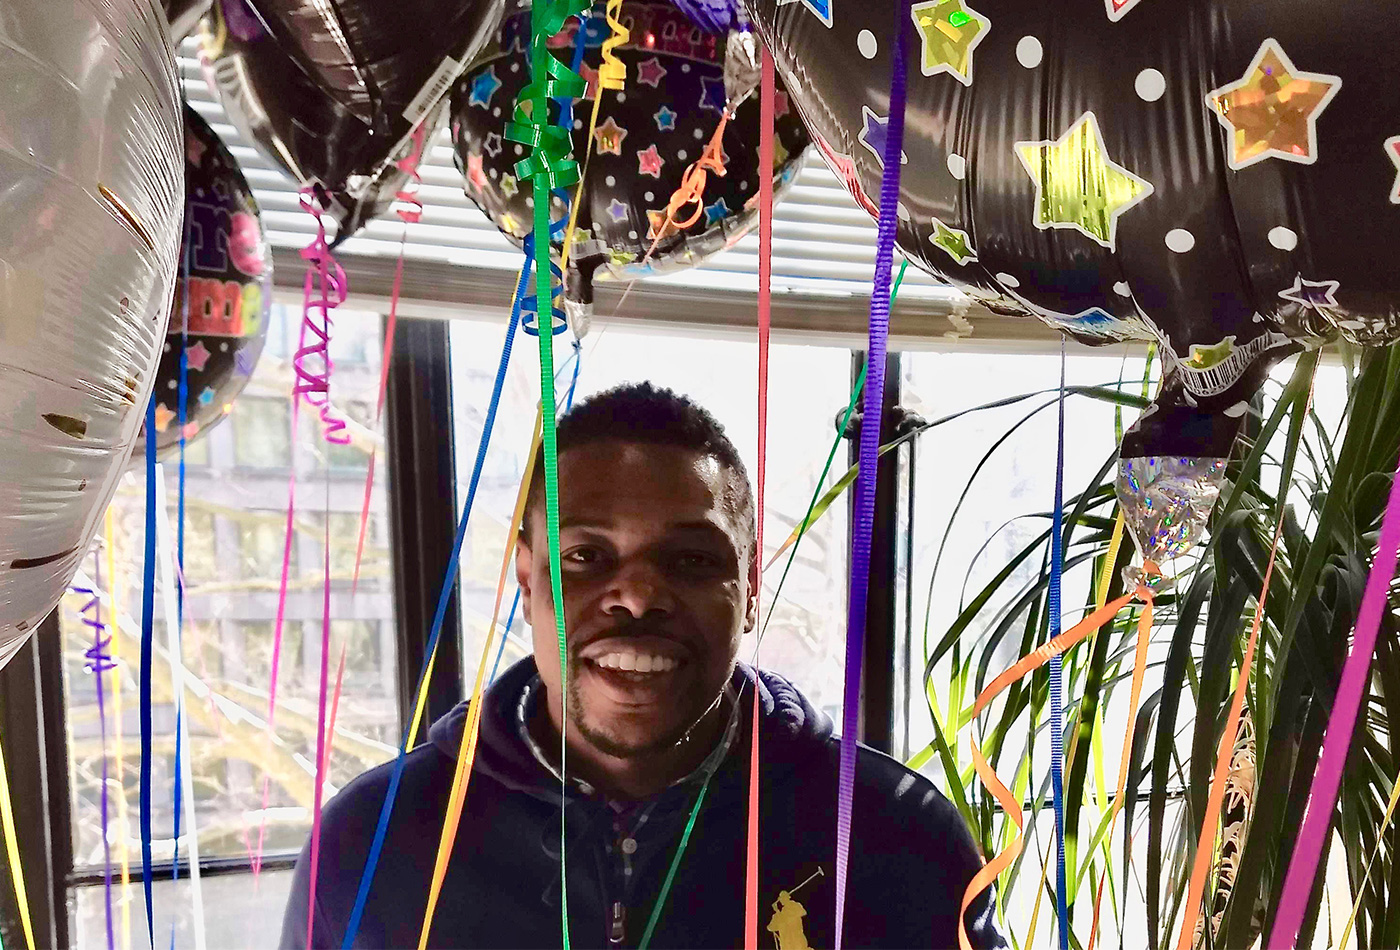 A man holds a bunch of balloons and smiles.